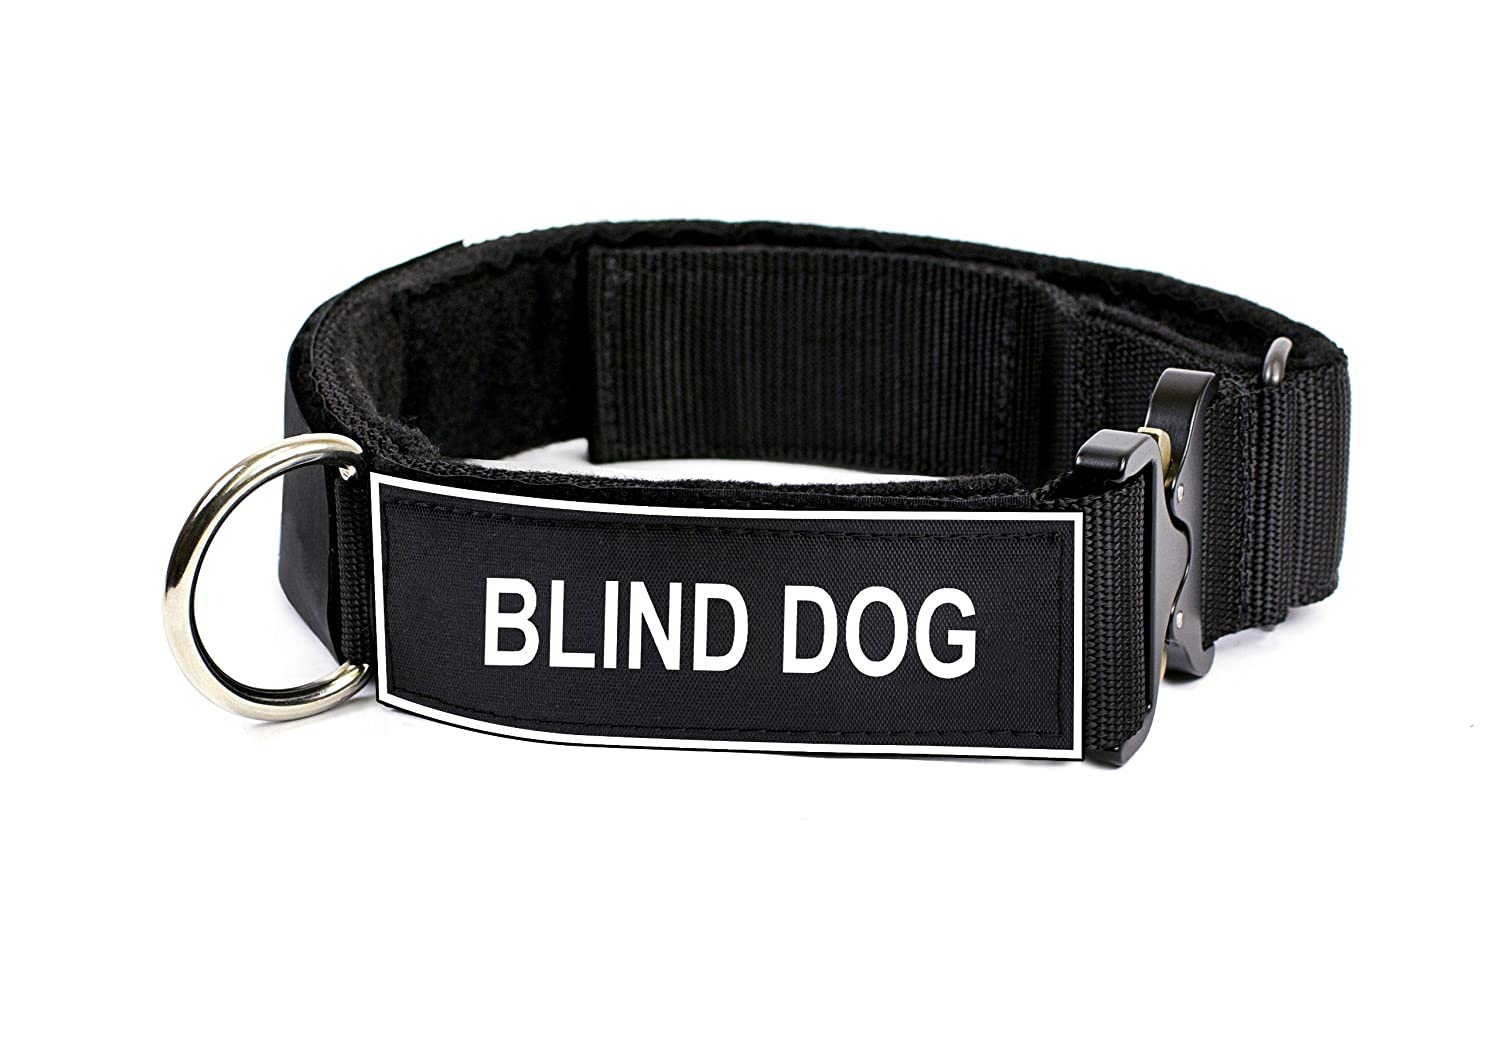 Dean & Tyler 21 to 26-Inch Strong Nylon Cobra Patch Collar with Felt Padding, Blind Dog Patches, Medium, Black